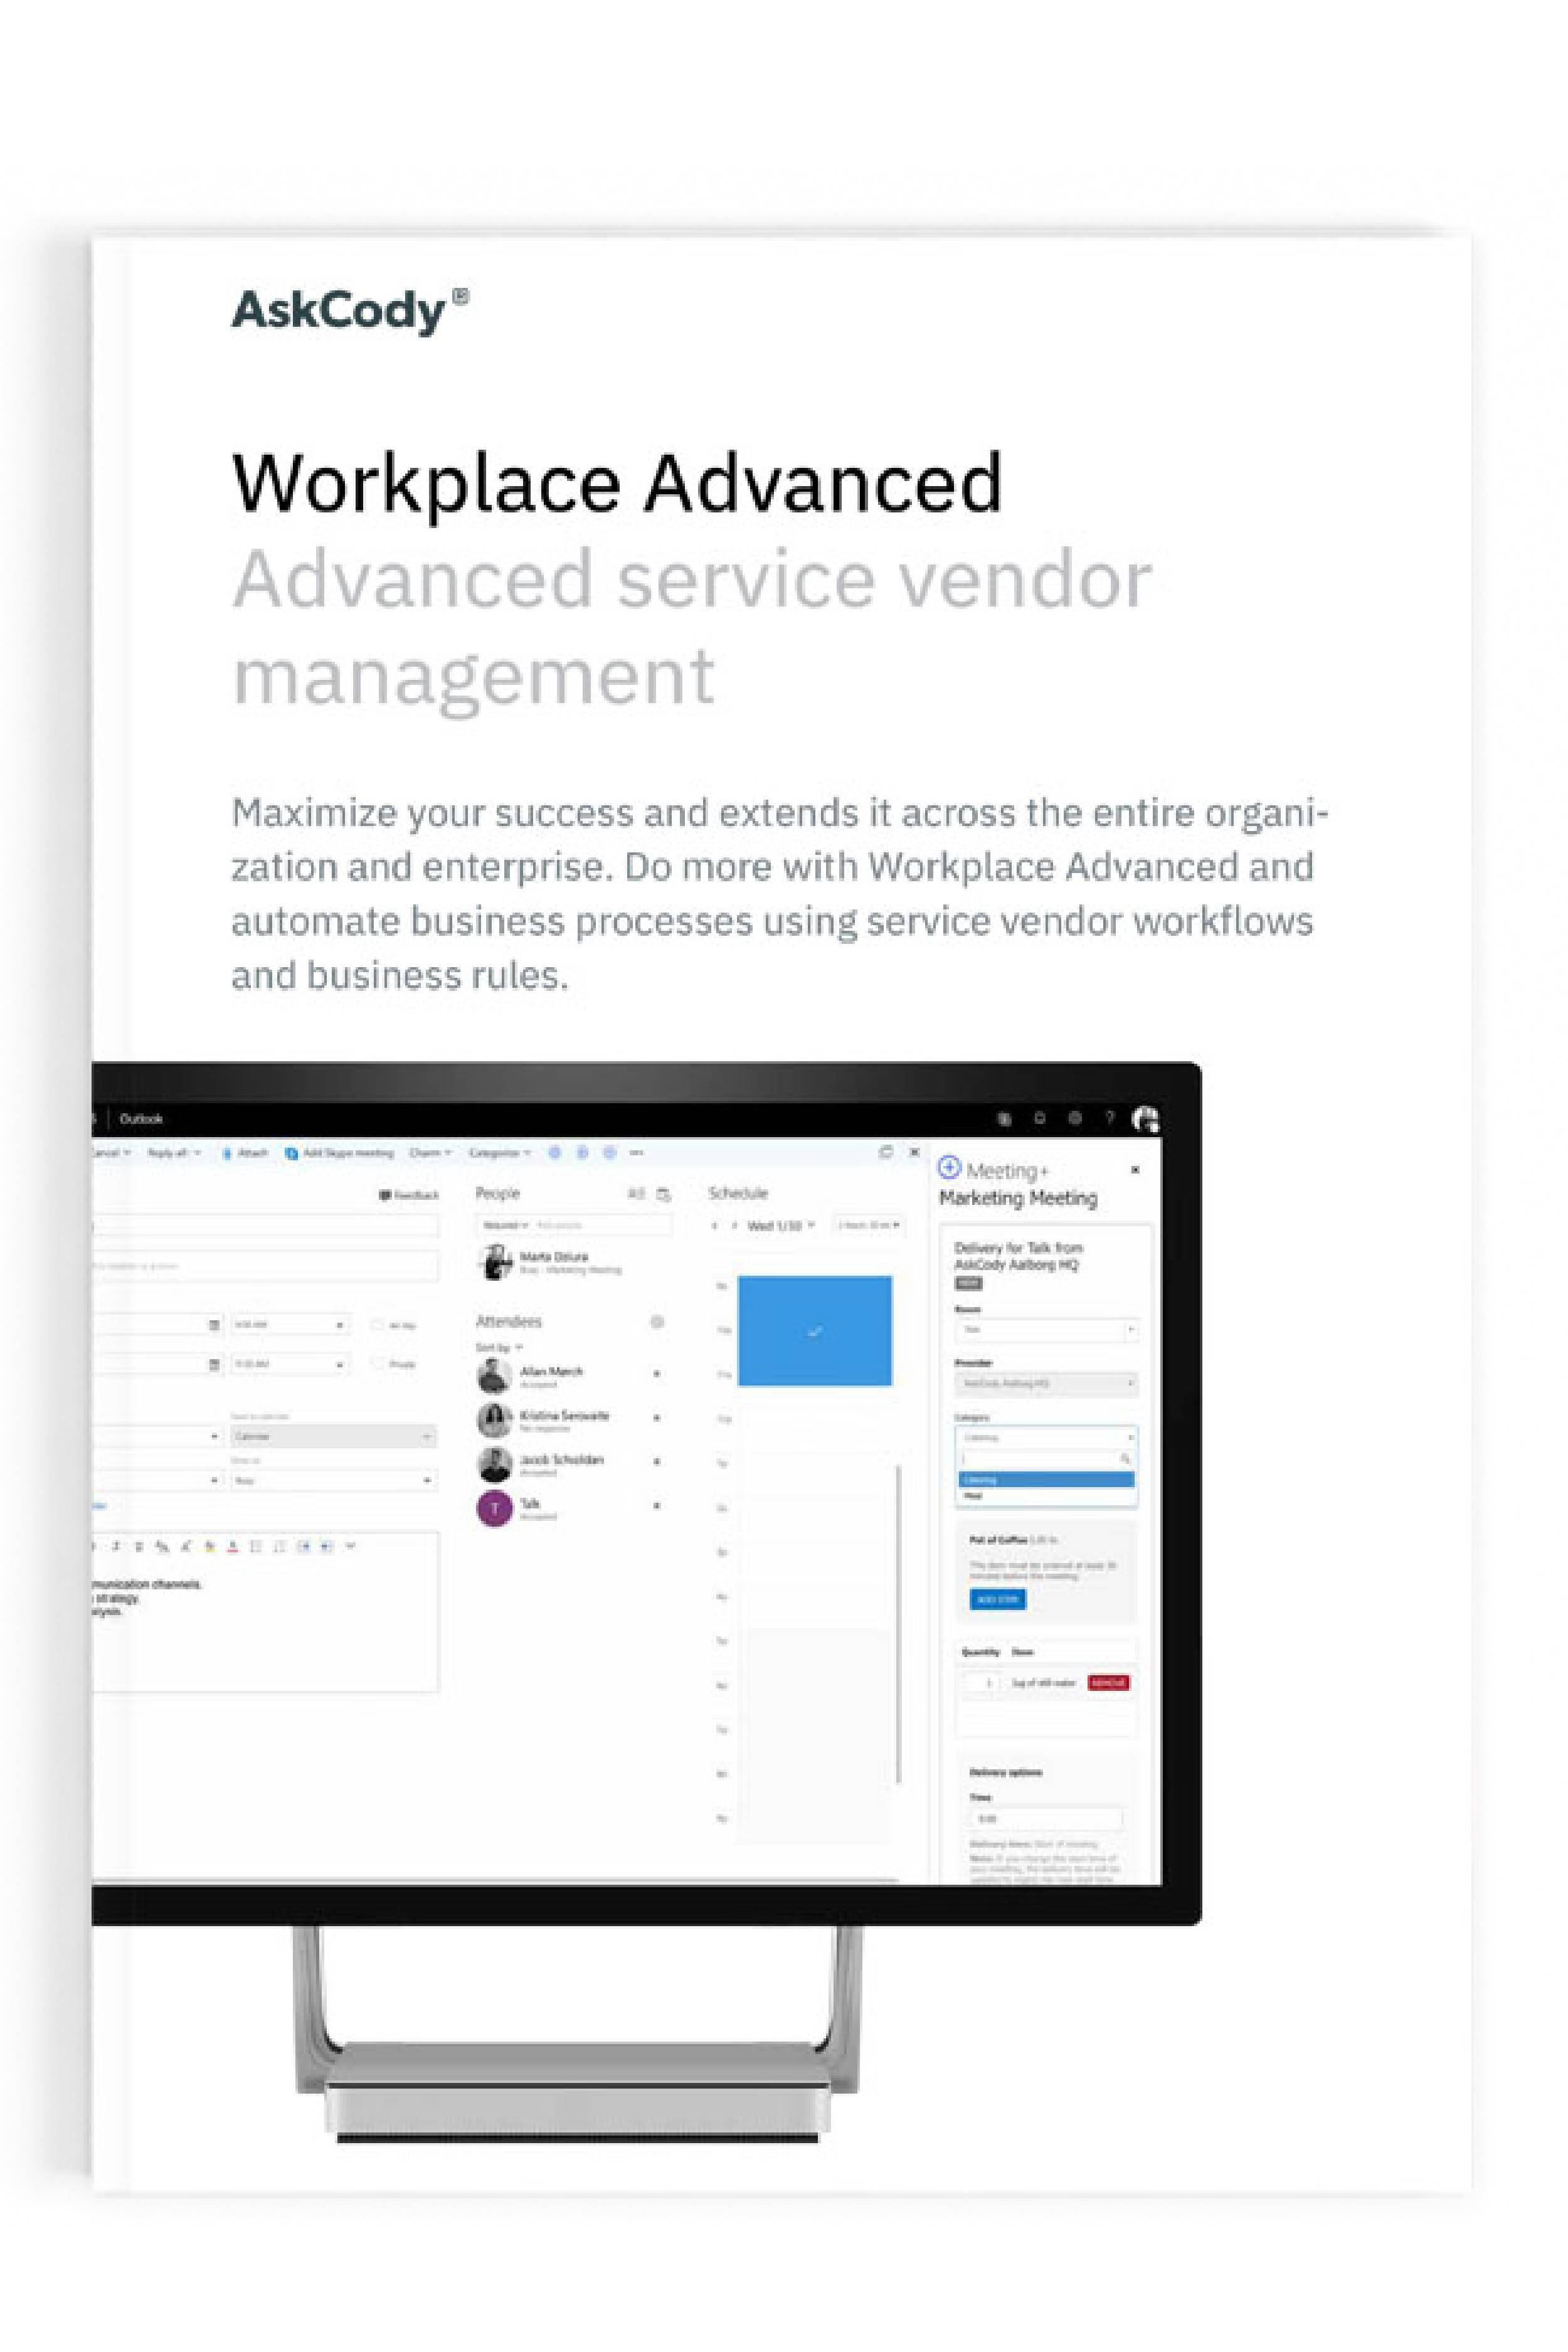 Workplace Advanced Product sheet